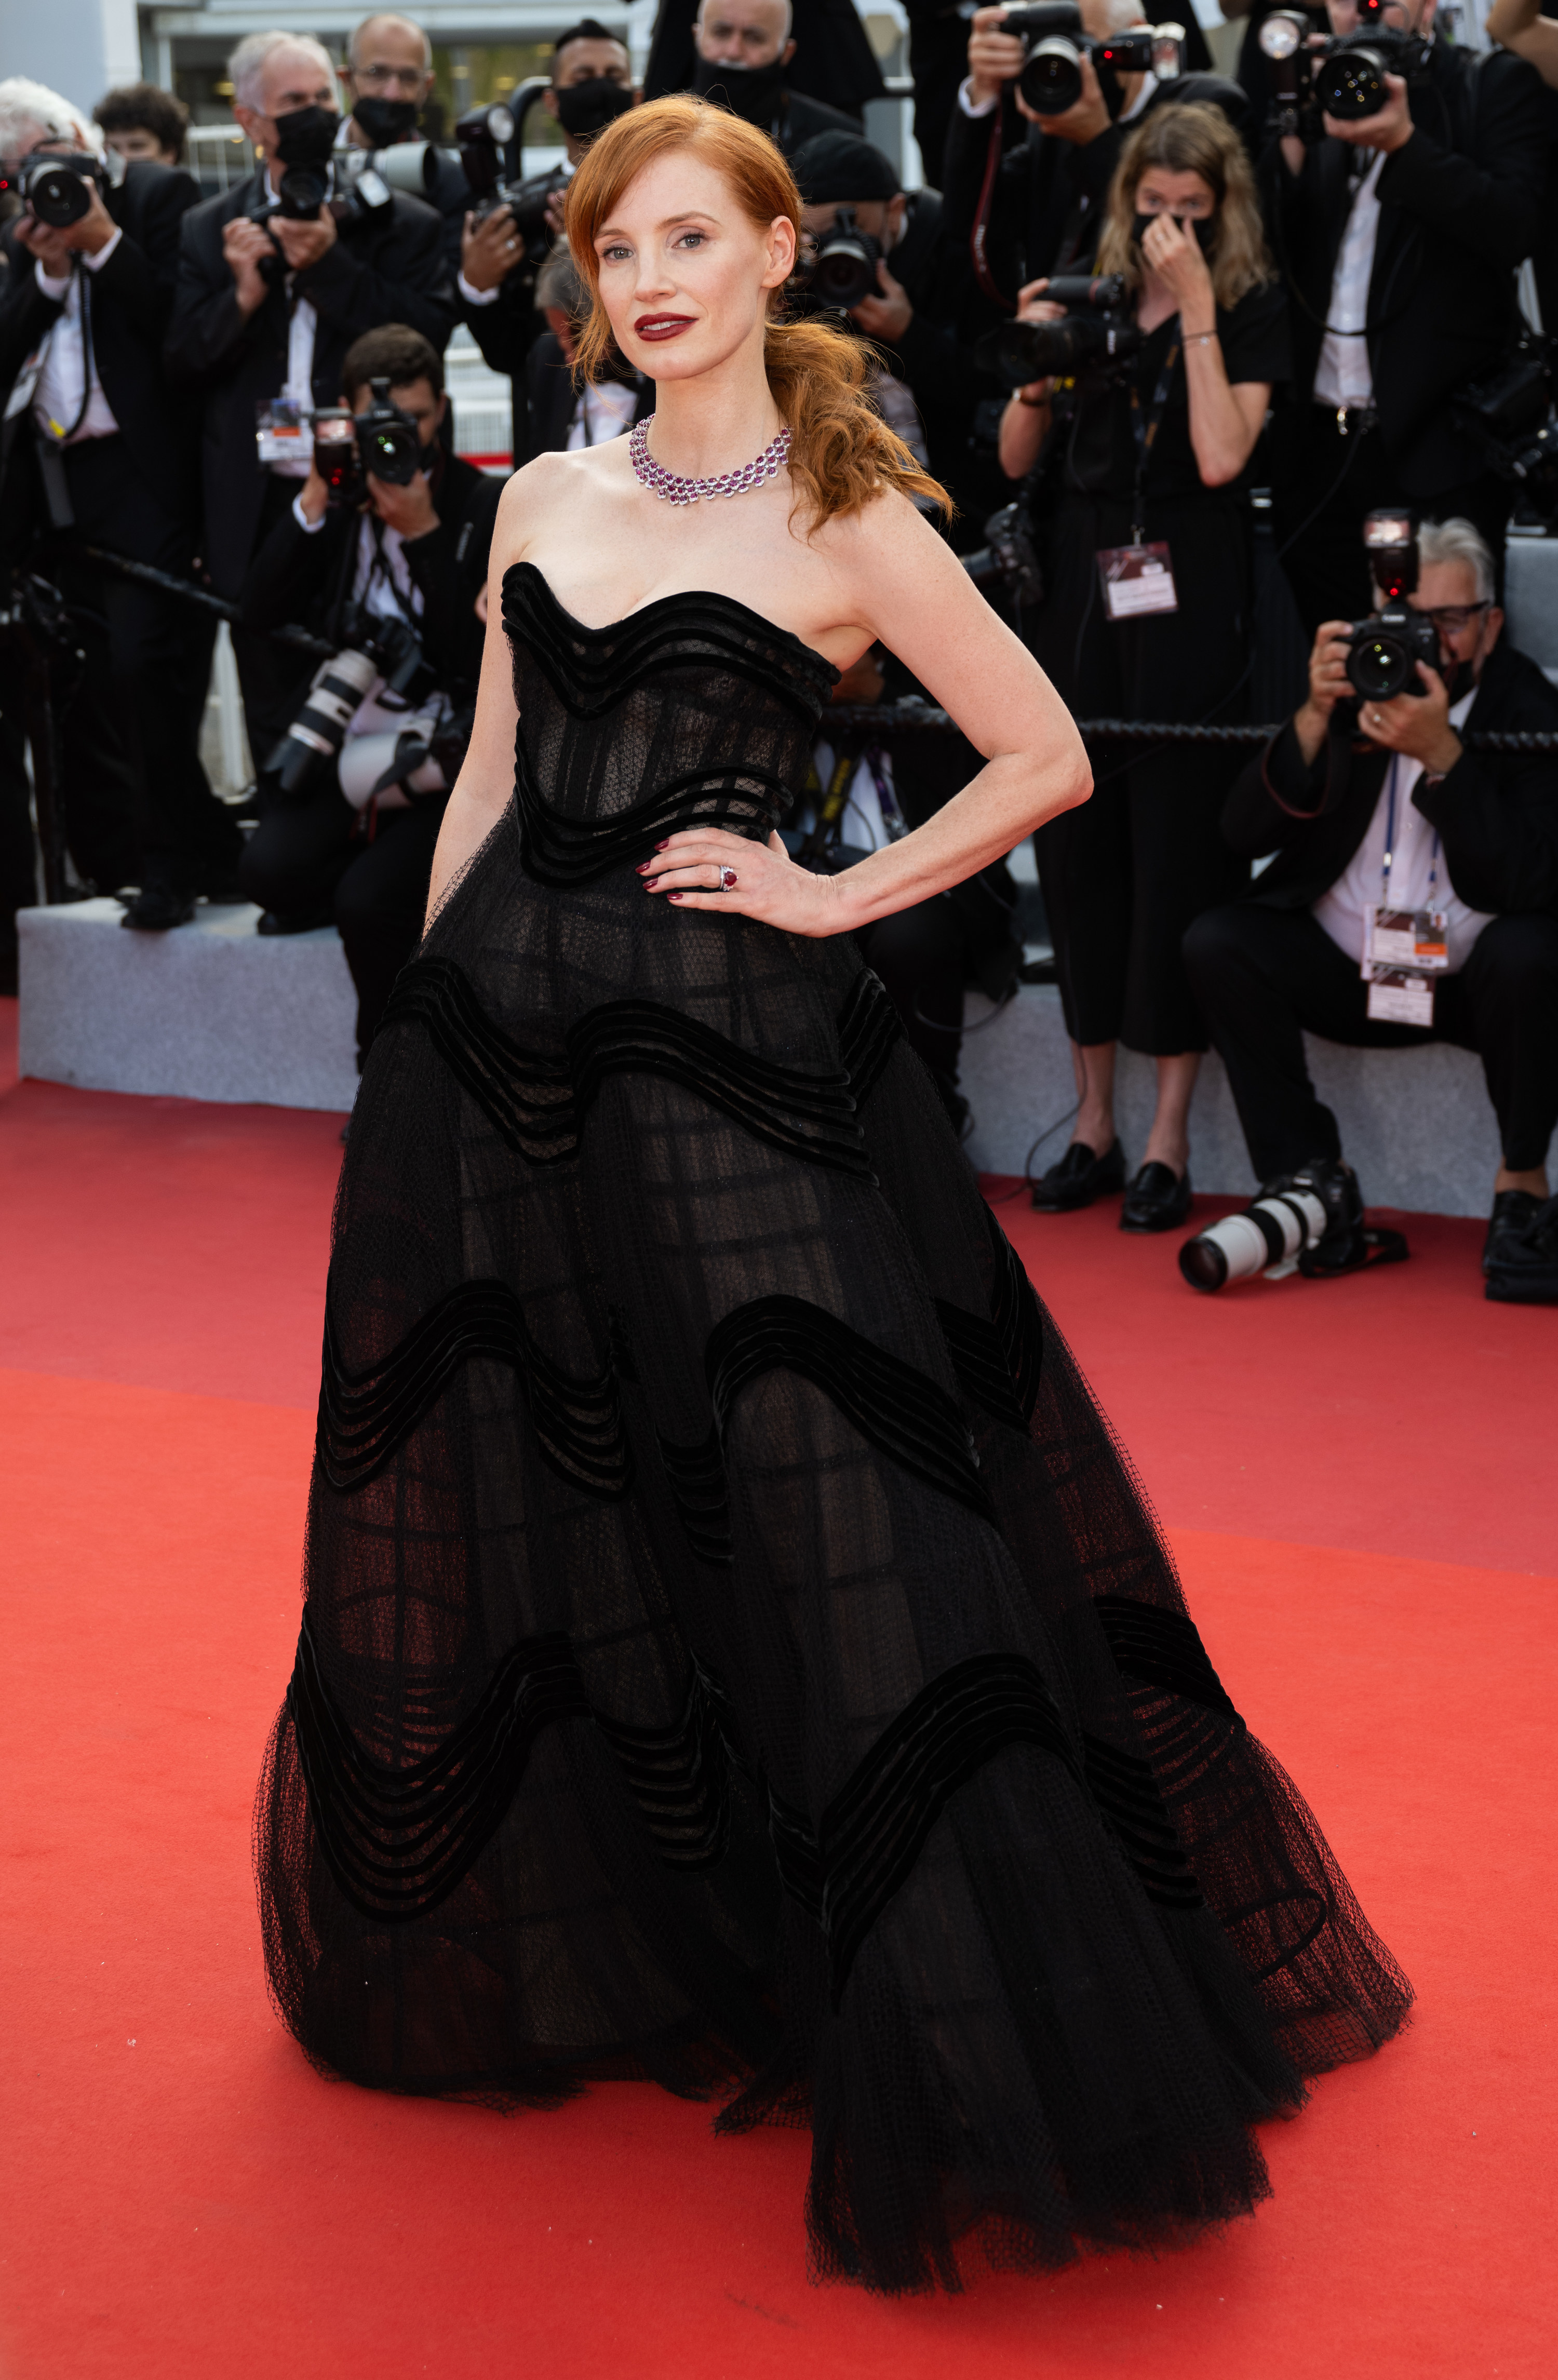 Jessica Chastain on the red carpet at the Cannes Film Festival